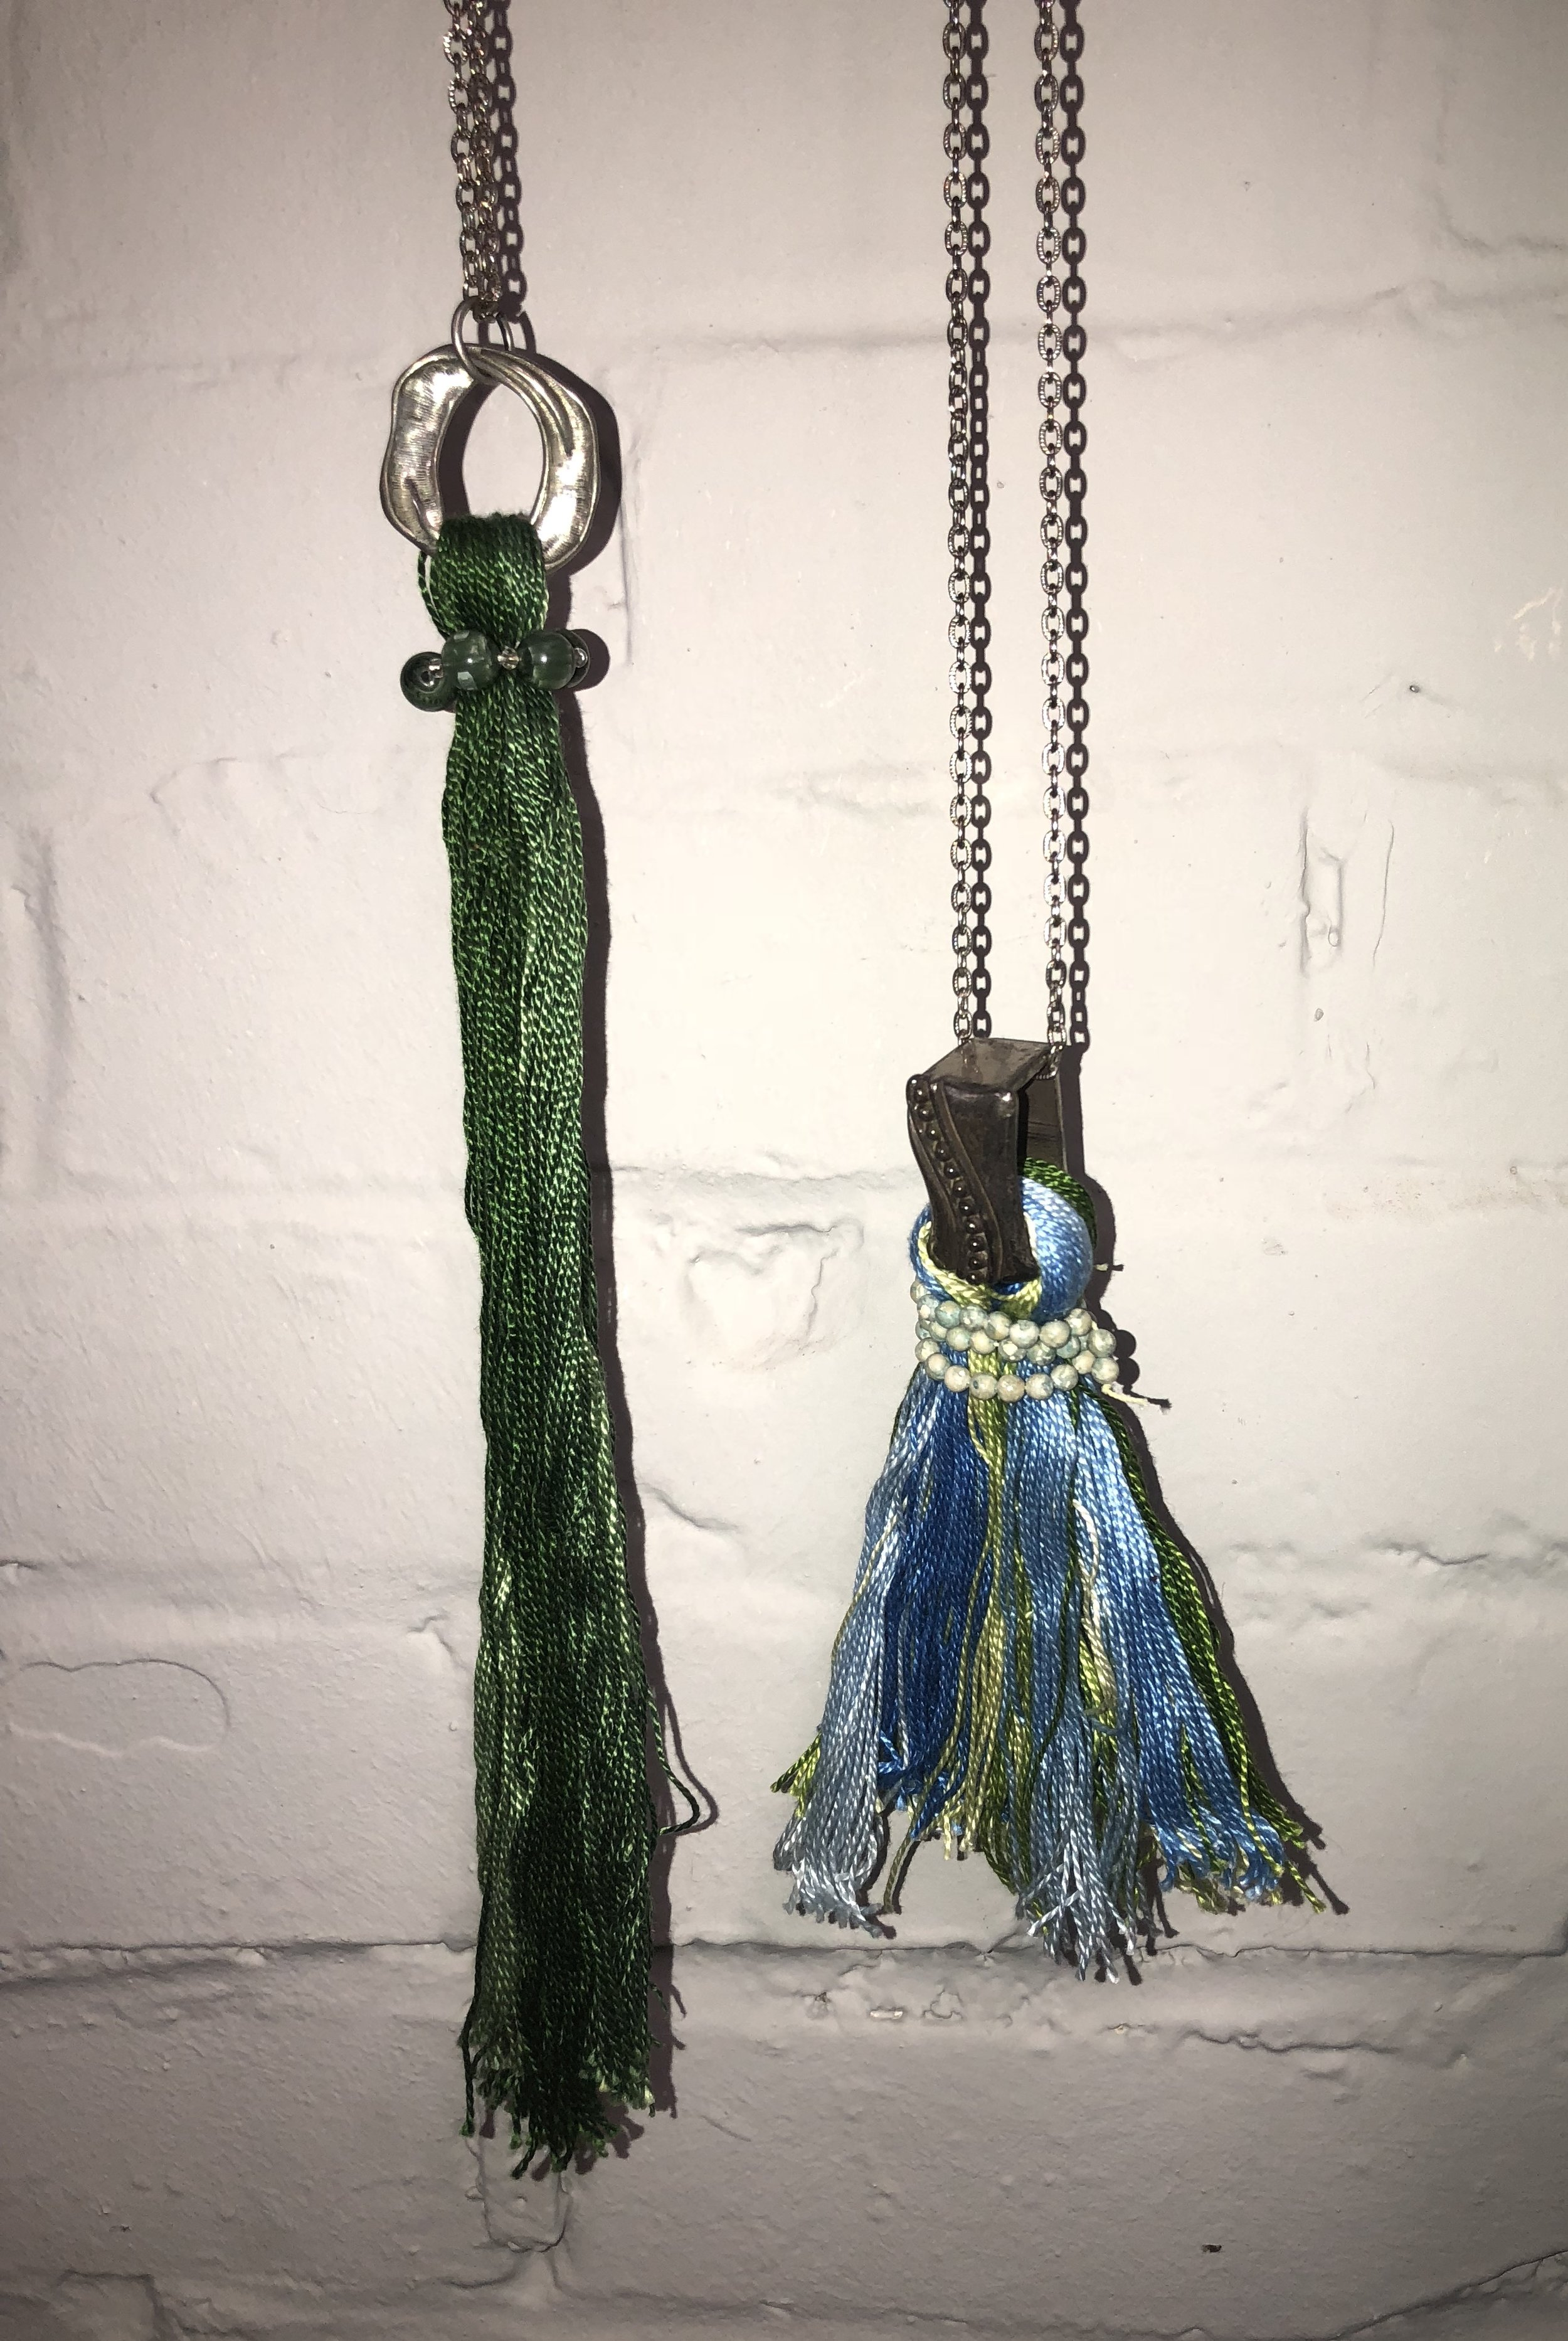 PAM DOMAN FLOWERS - TASSLE JEWELRY AND PURSES